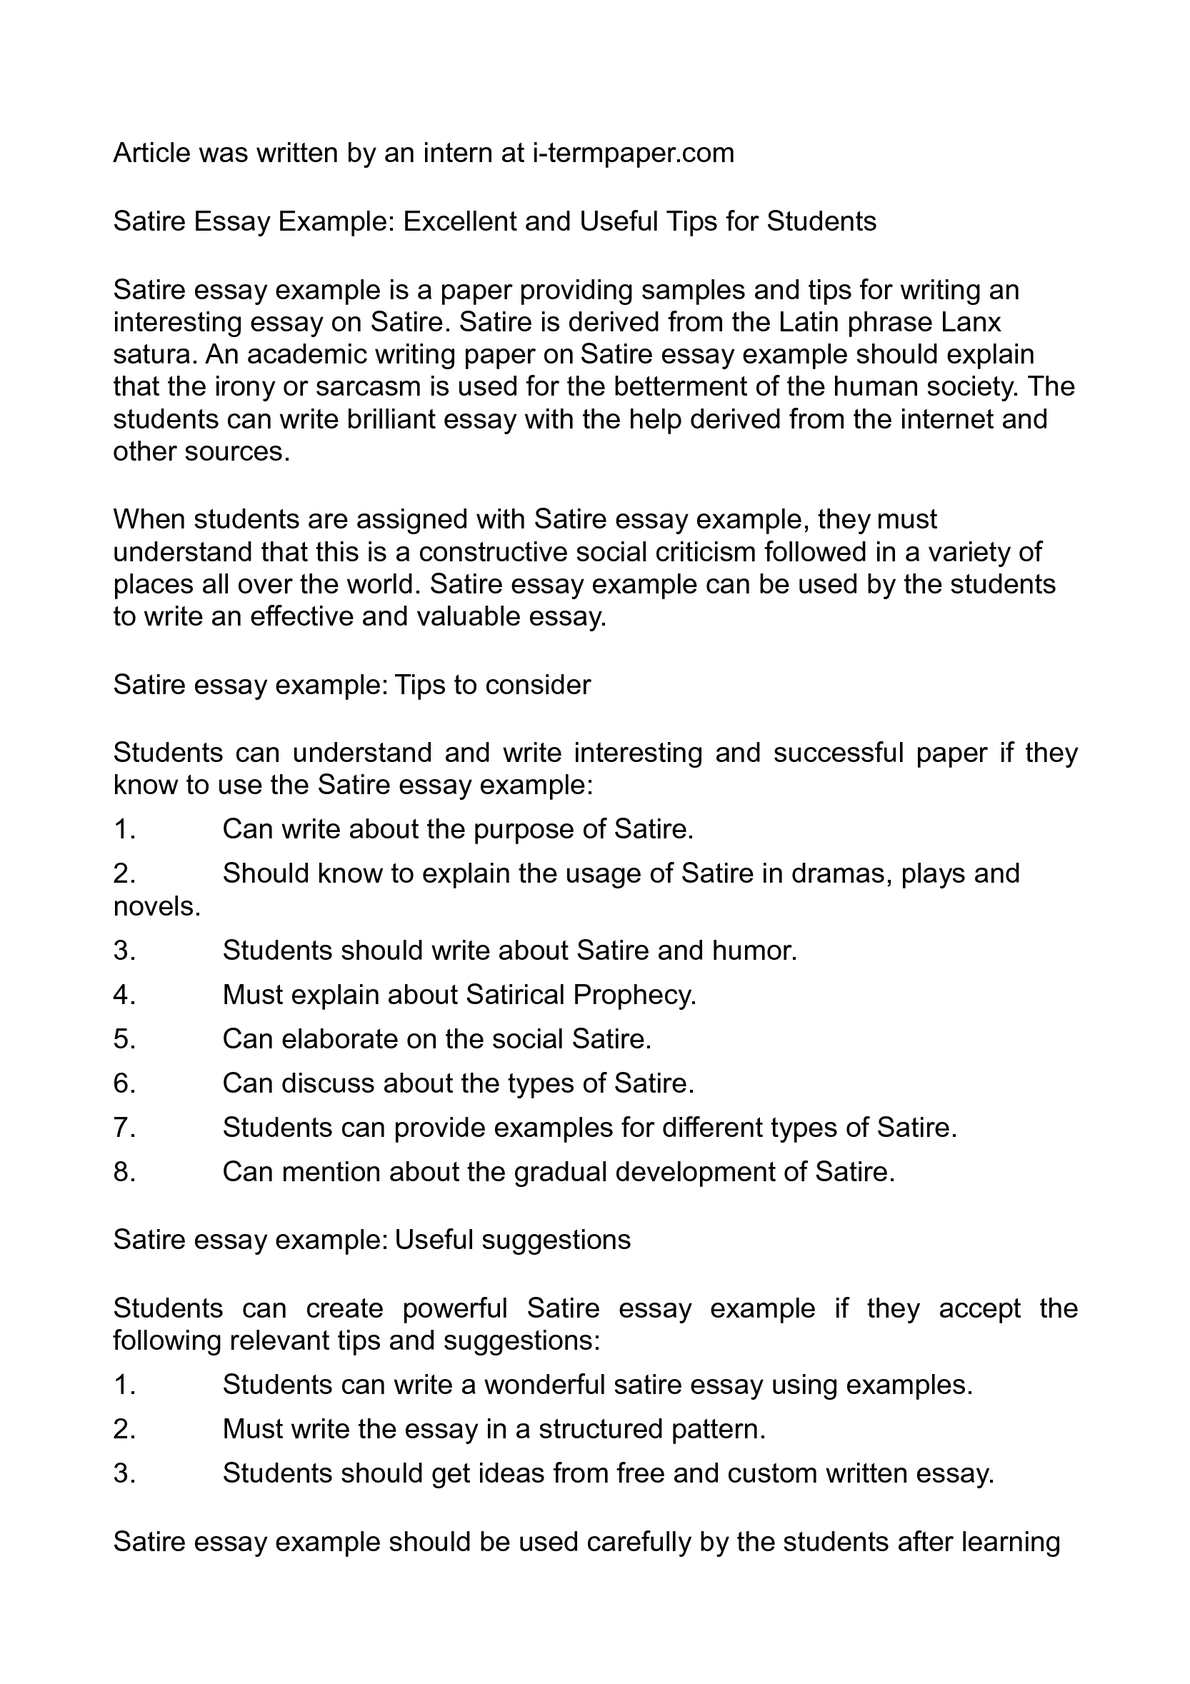 diversity essay topics satire essay topics satirical essay topics  satire essay topics satirical essay topics gxart example of satirical essay topics gxart orgexamples of satire